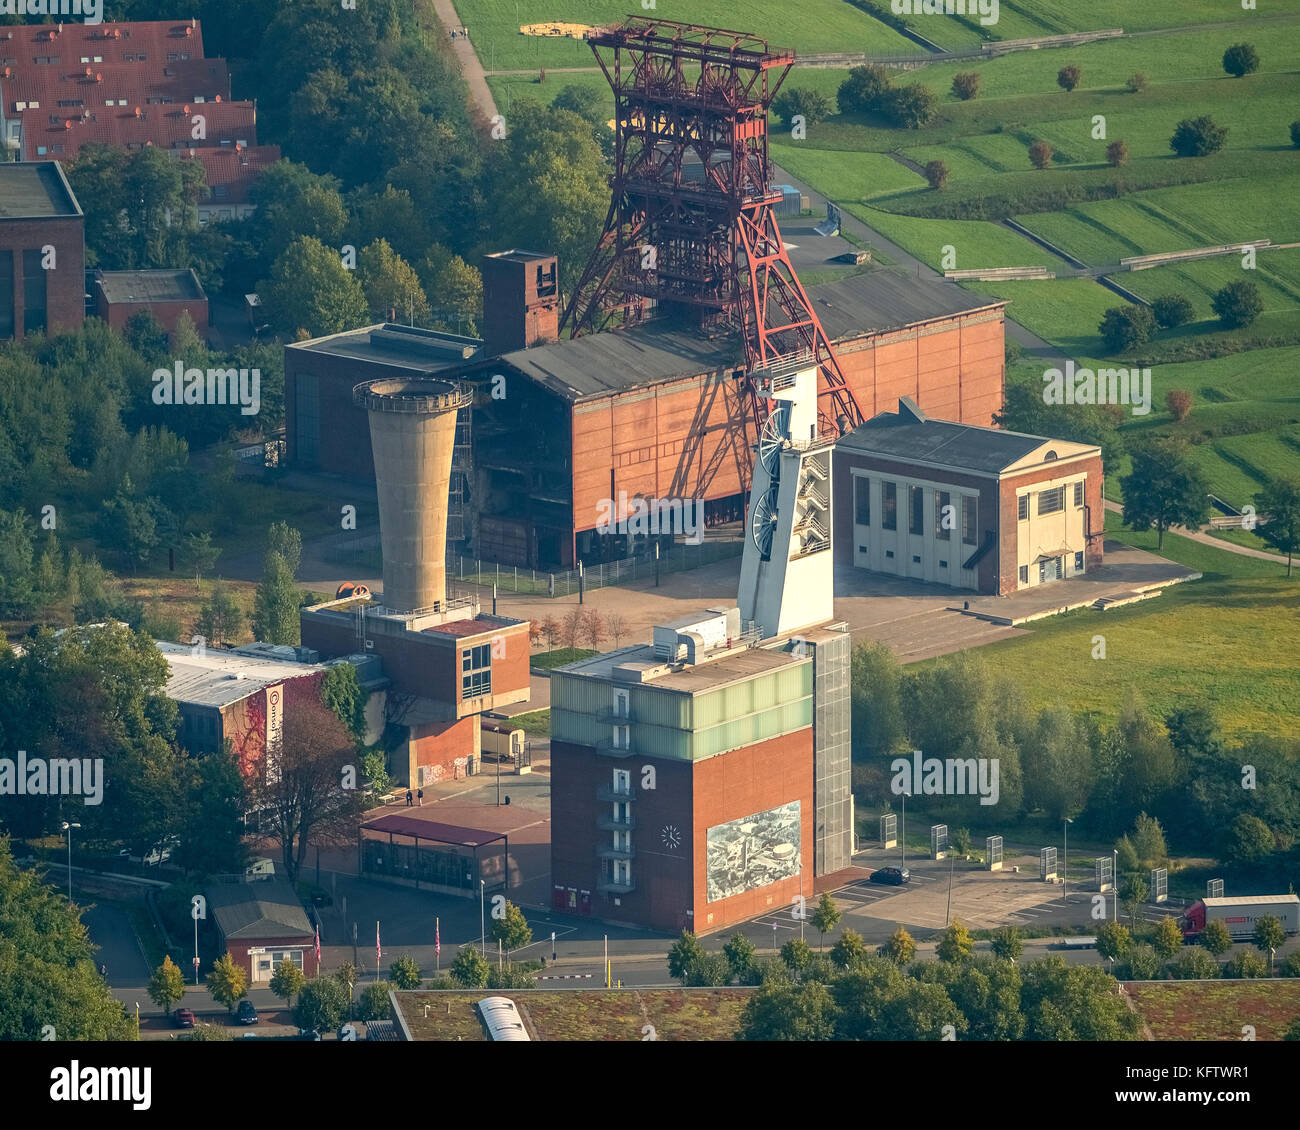 Consolidation 3 colliery, former colliery, Zechenturm, winding tower, Maschinenhaus, Gelsenkirchen, Ruhr area, North - Stock Image